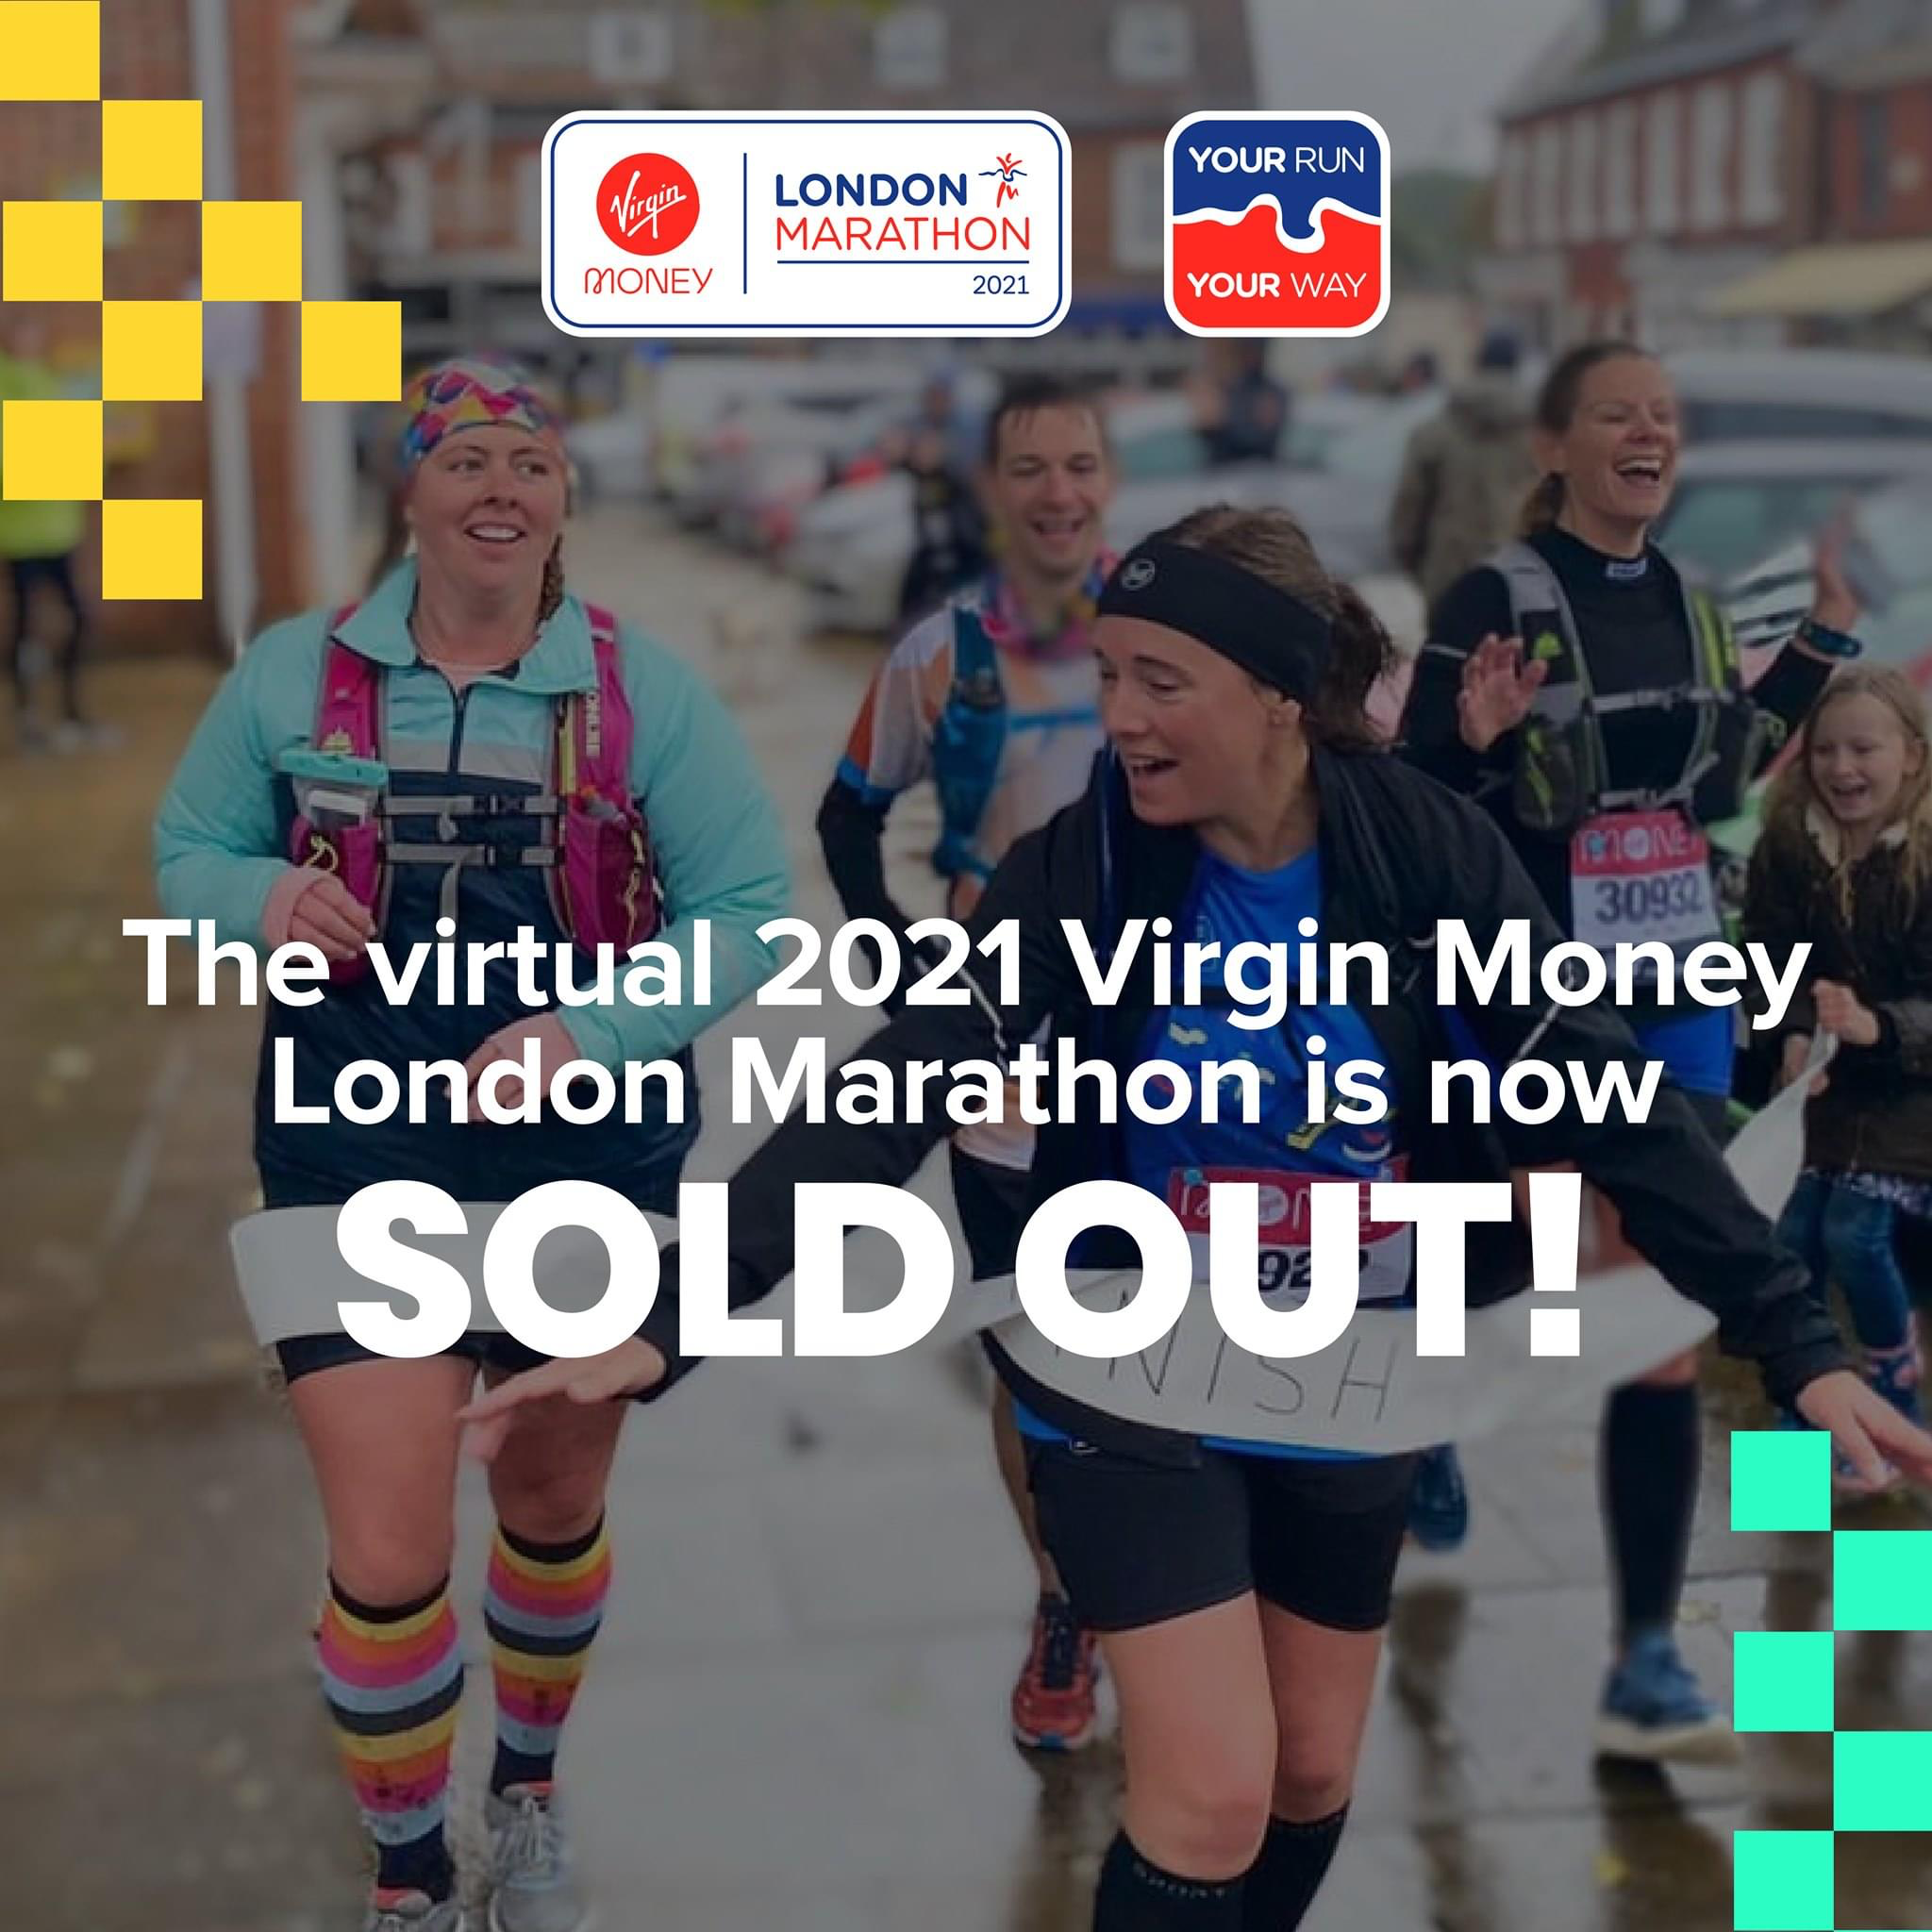 Virtual london marathon sold out